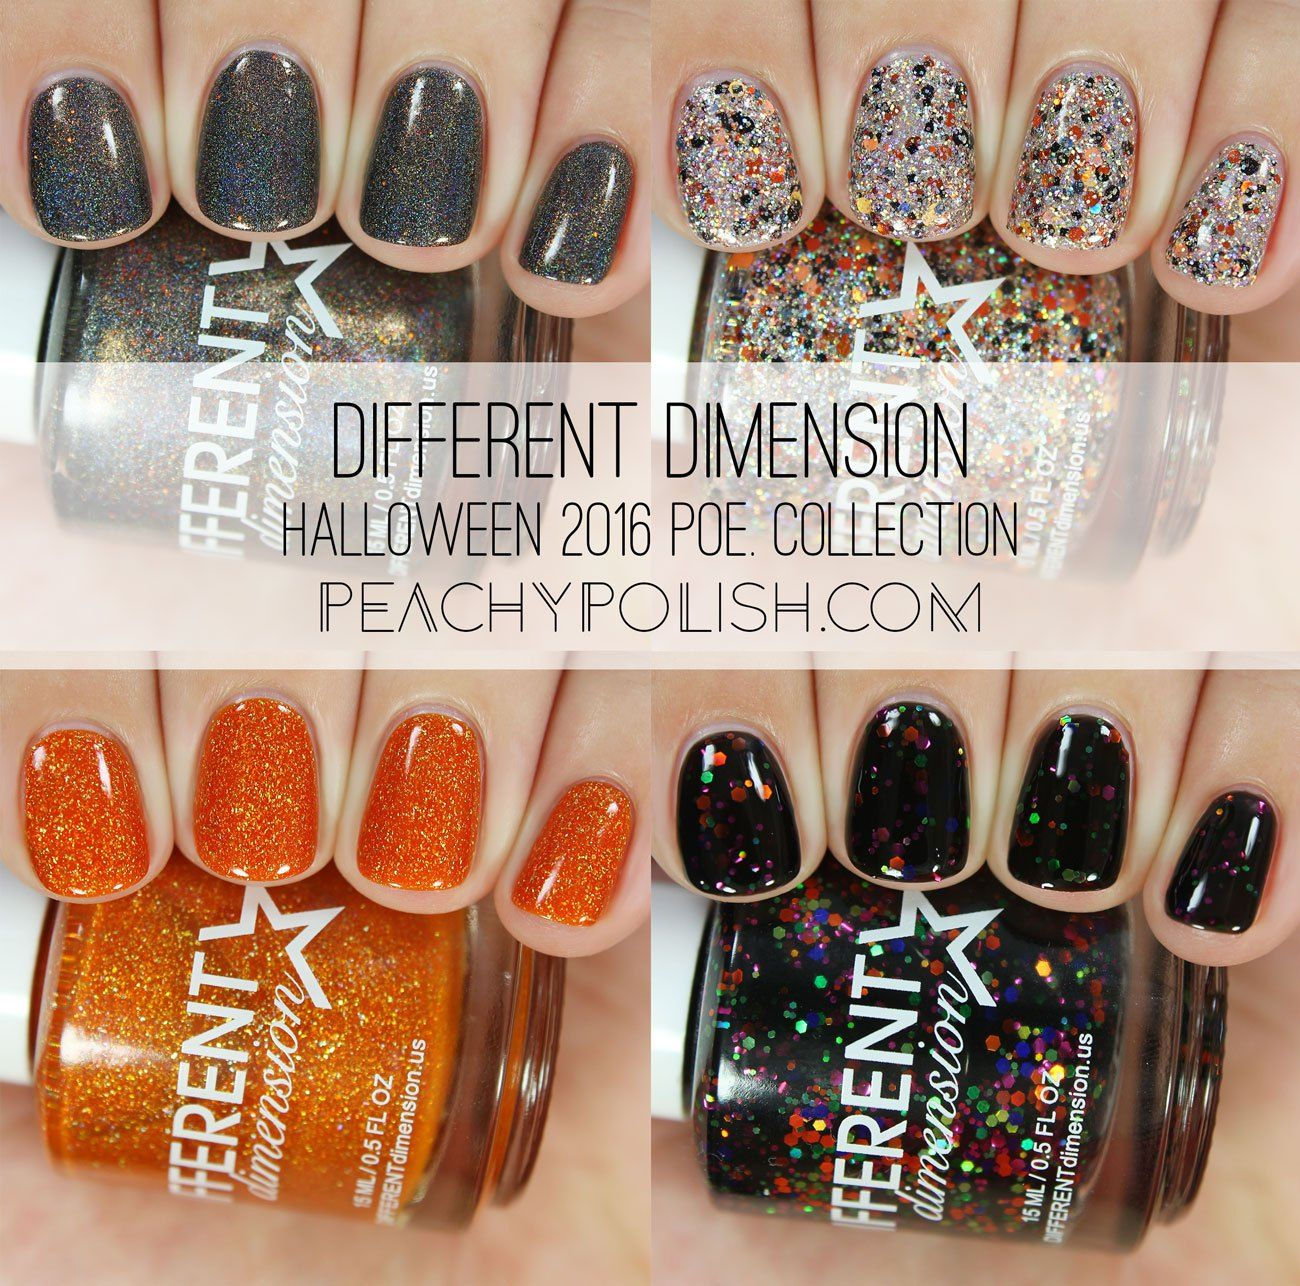 Different Dimension Halloween 2016 Poe. Collection | Peachy Polish